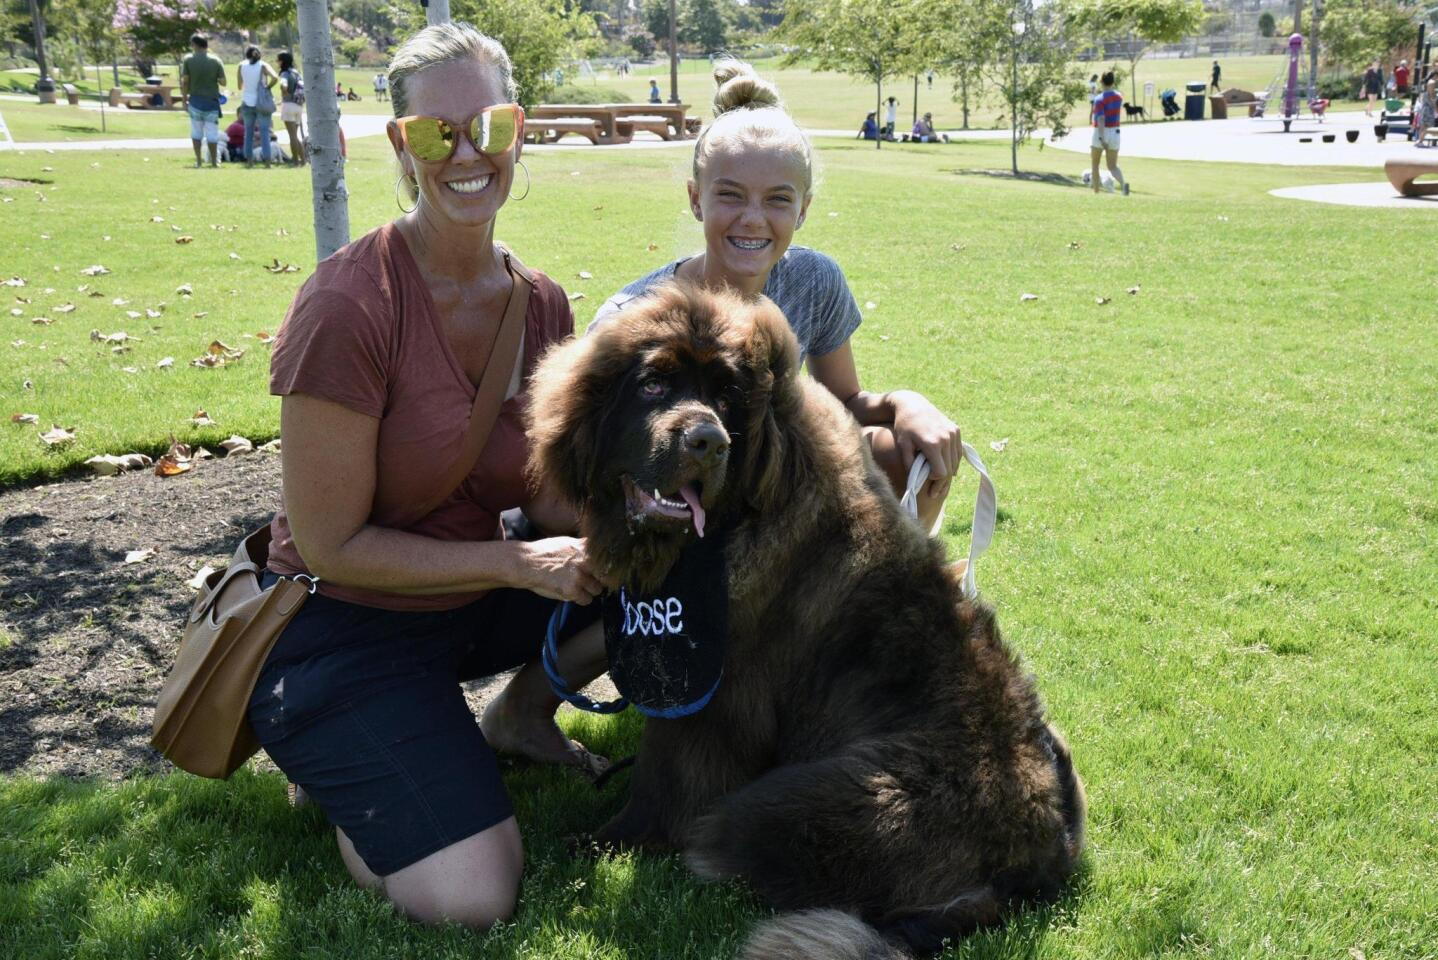 Tiffany Fairchild and Chole, with their puppy Moose